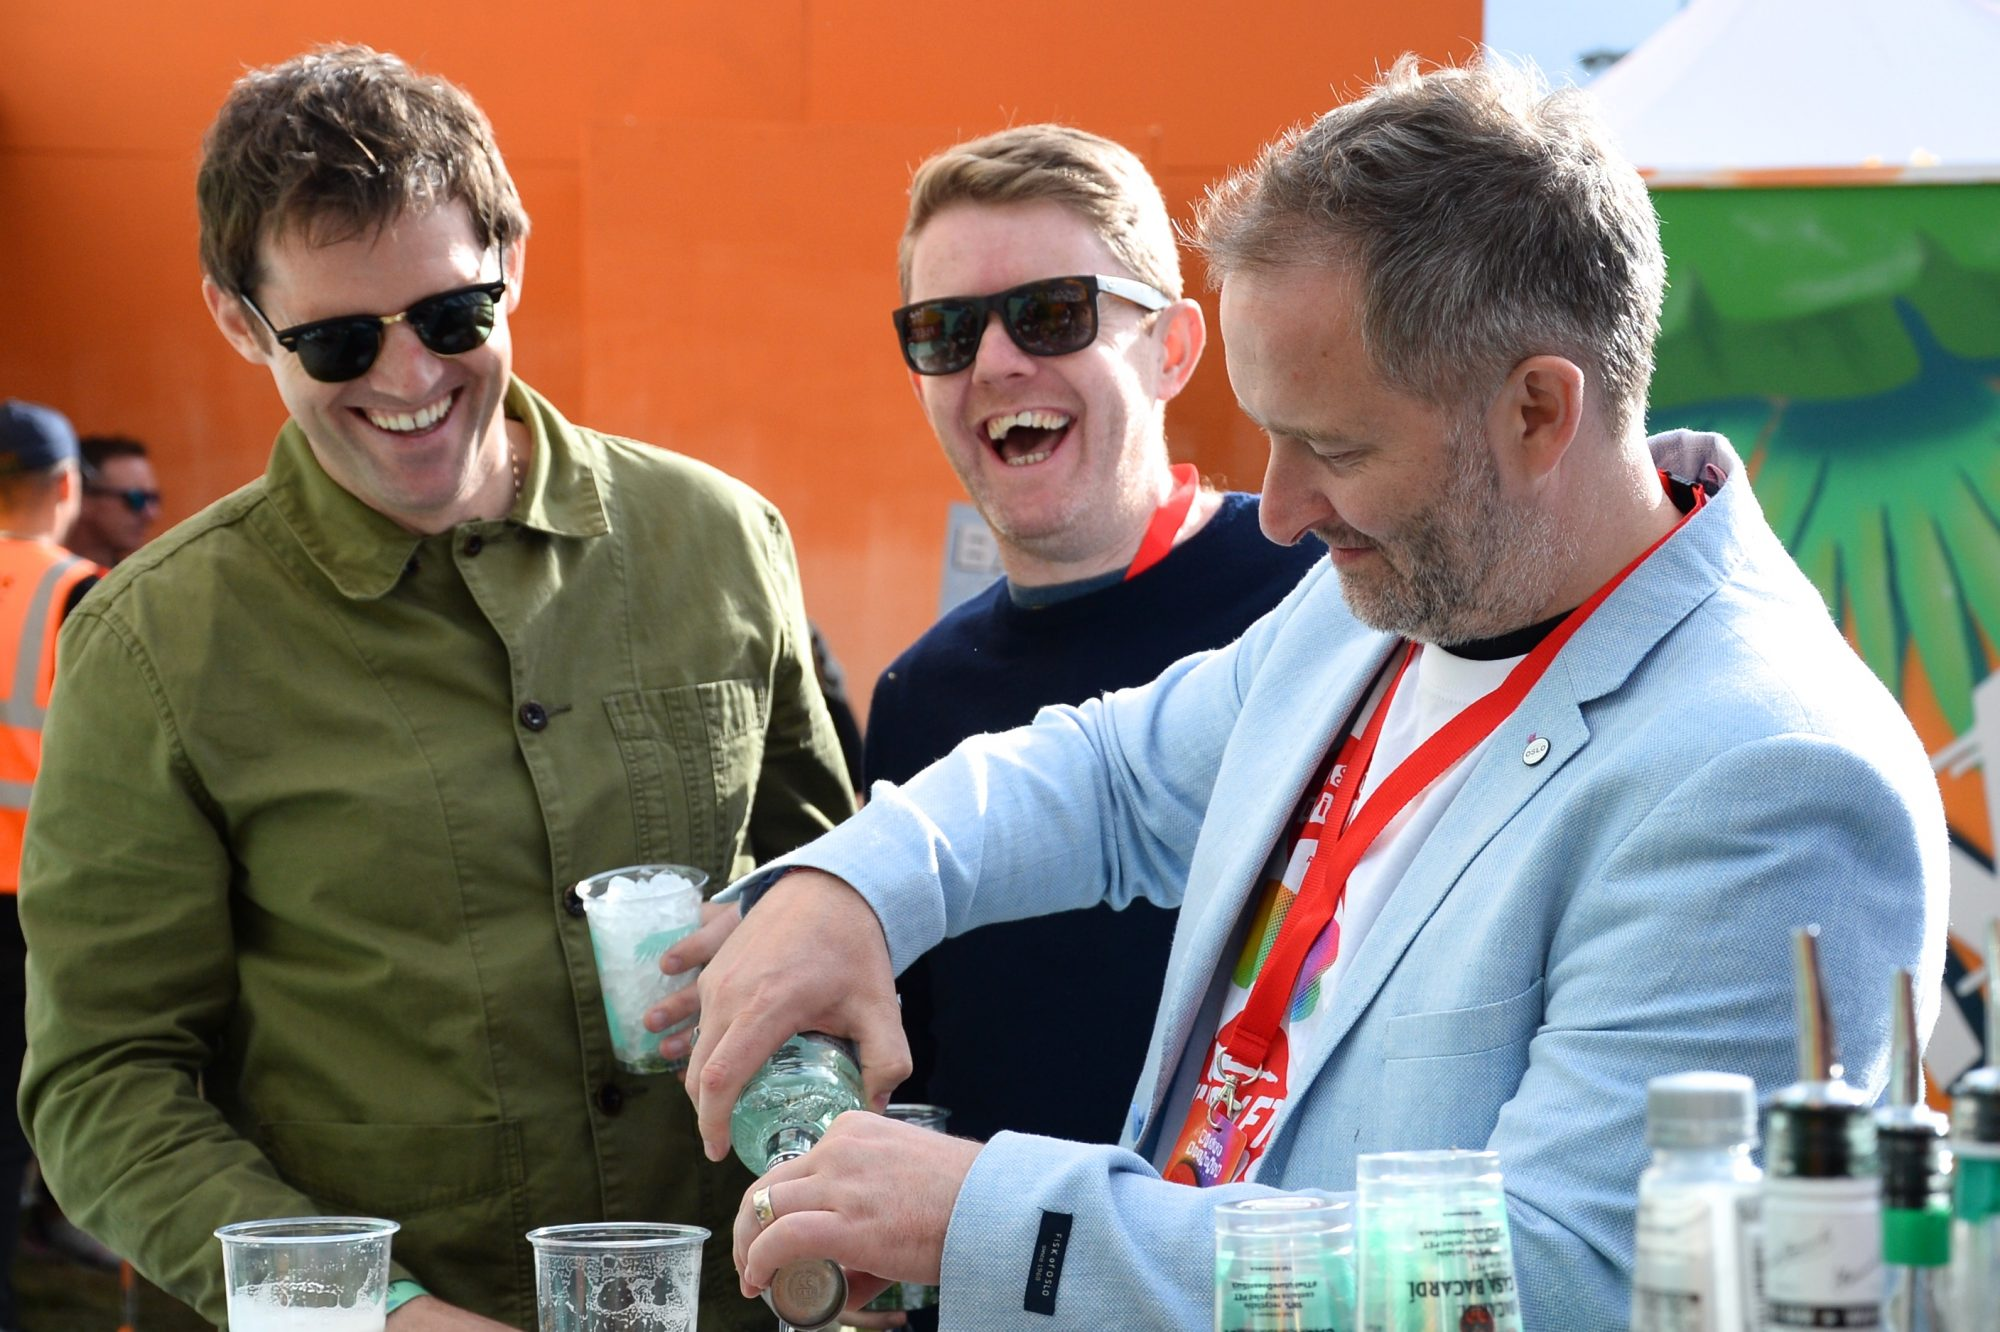 31st August 2019. Kevin Kilbane and the Off the Ball lads pictured at Casa Bacardi on day 2 of Electric Picnic. Photo: Justin Farrelly.